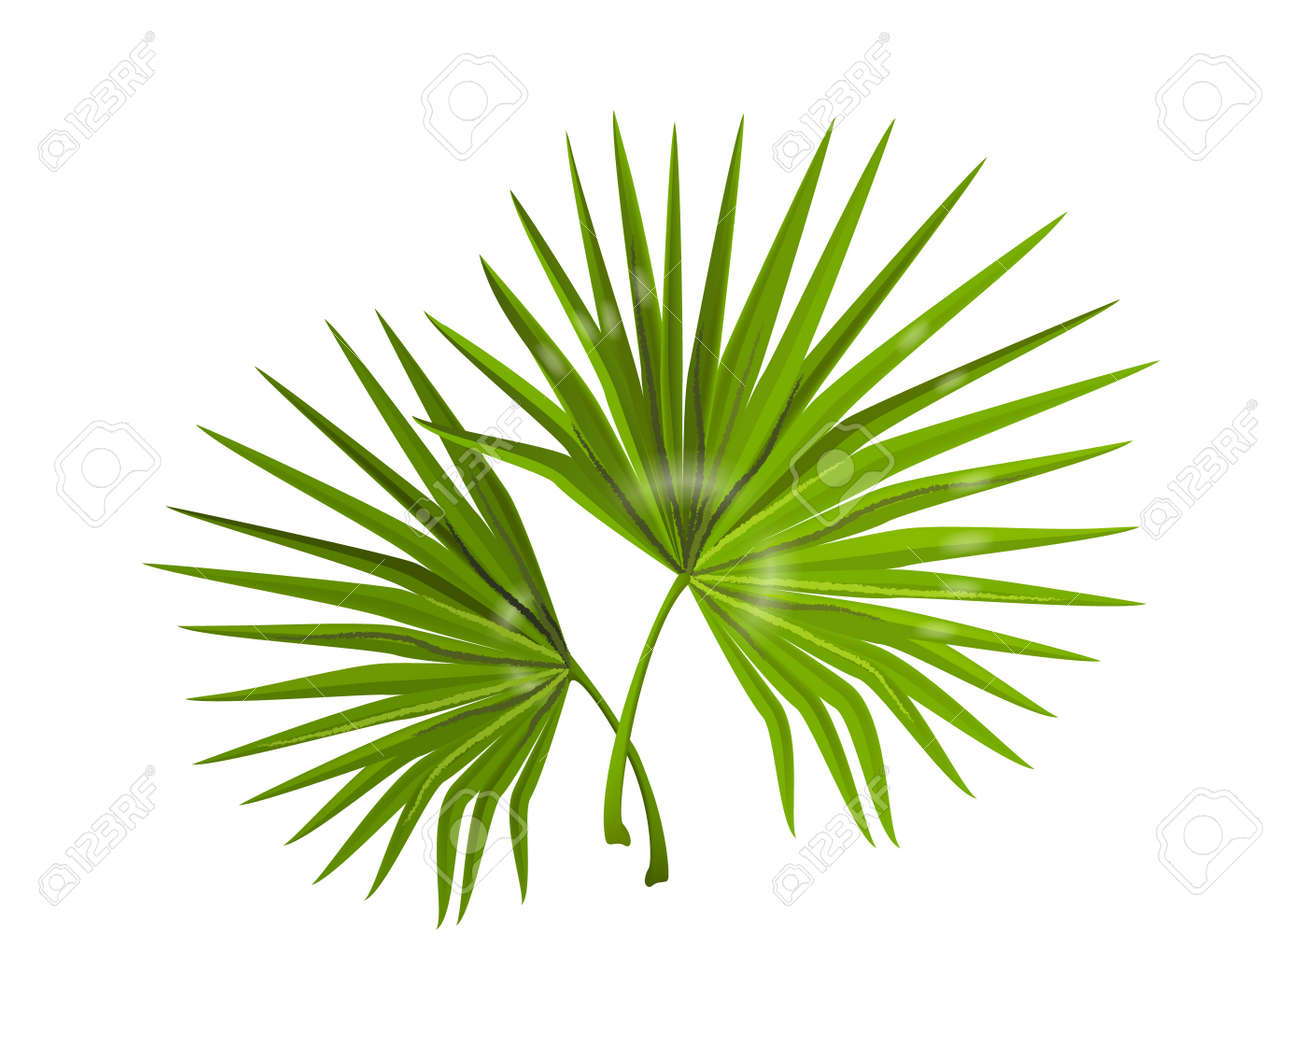 Jungle leaves. Realistic monstera branches with narrow long foliage. Composition of tropical forest plants. Decorative natural background for spa and beauty poster. Vector palm greenery - 166157792